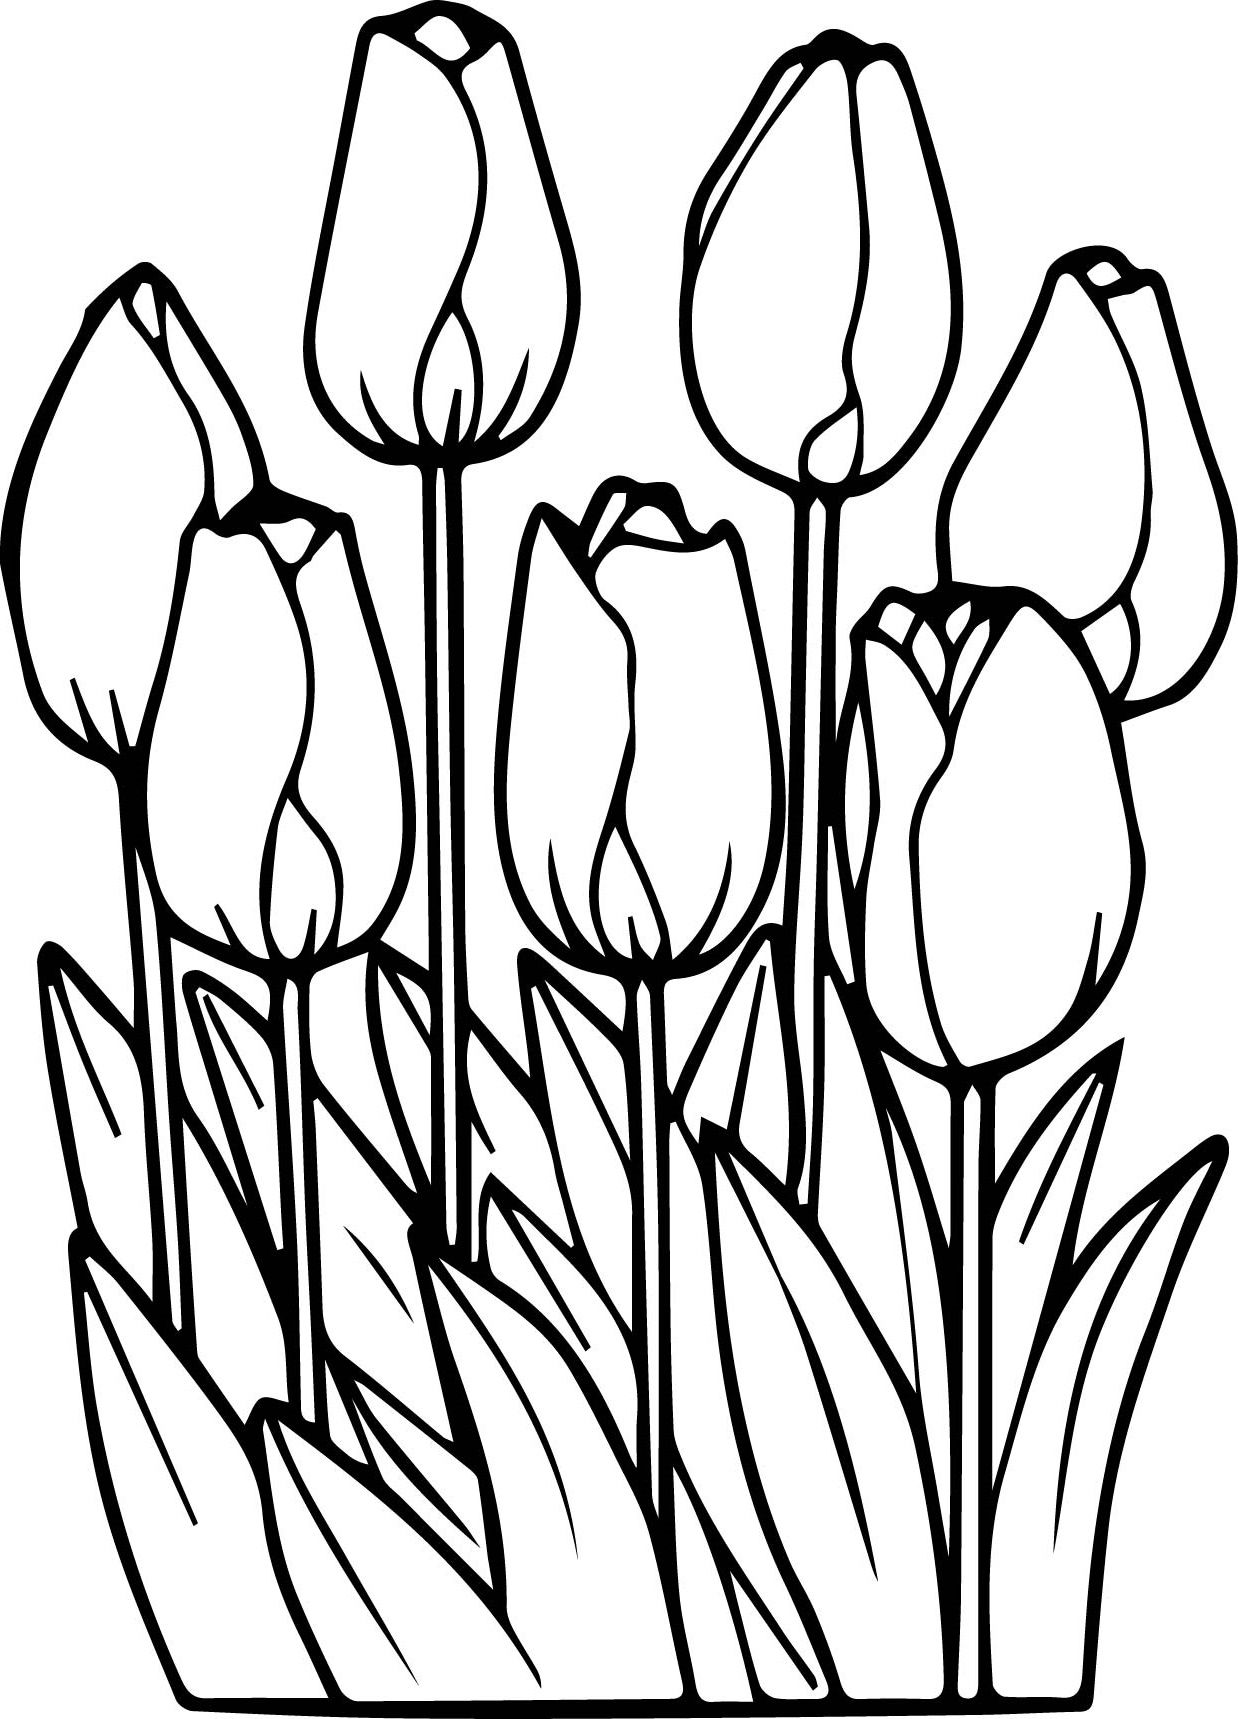 Printable Tulips Flower Coloring Pages | K5 Worksheets ...